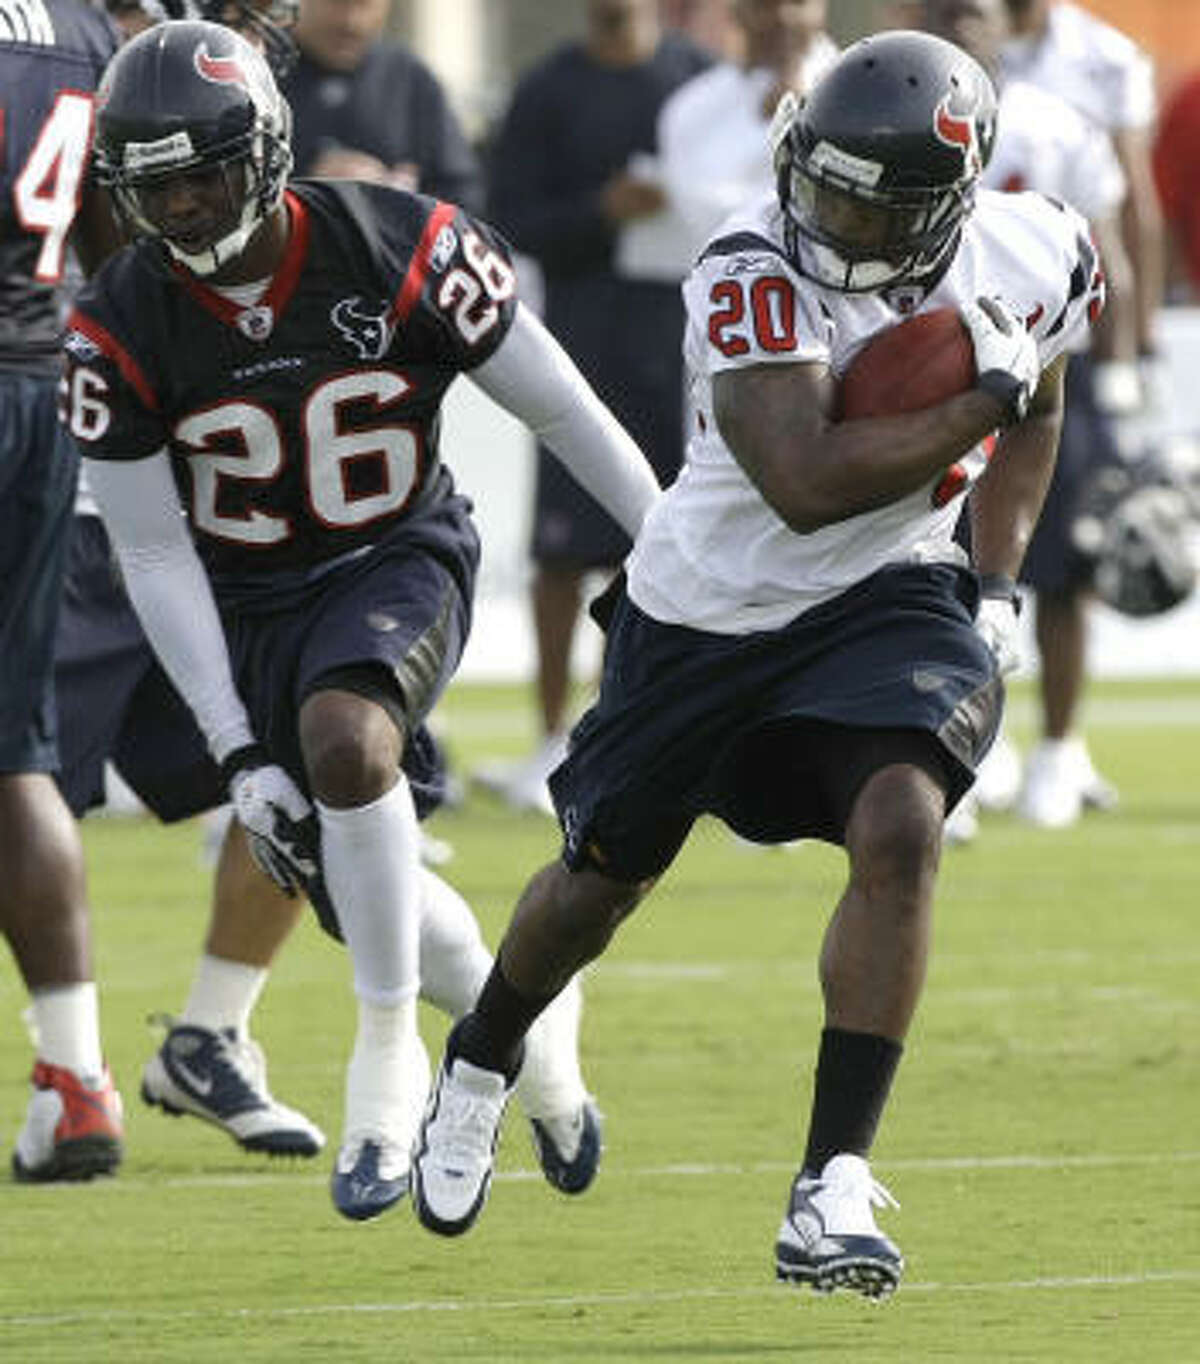 Veterans Chris Brown and Ryan Moats and rookies Arian Foster and Jeremiah Johnson are competing for the backup job behind Steve Slaton (above).